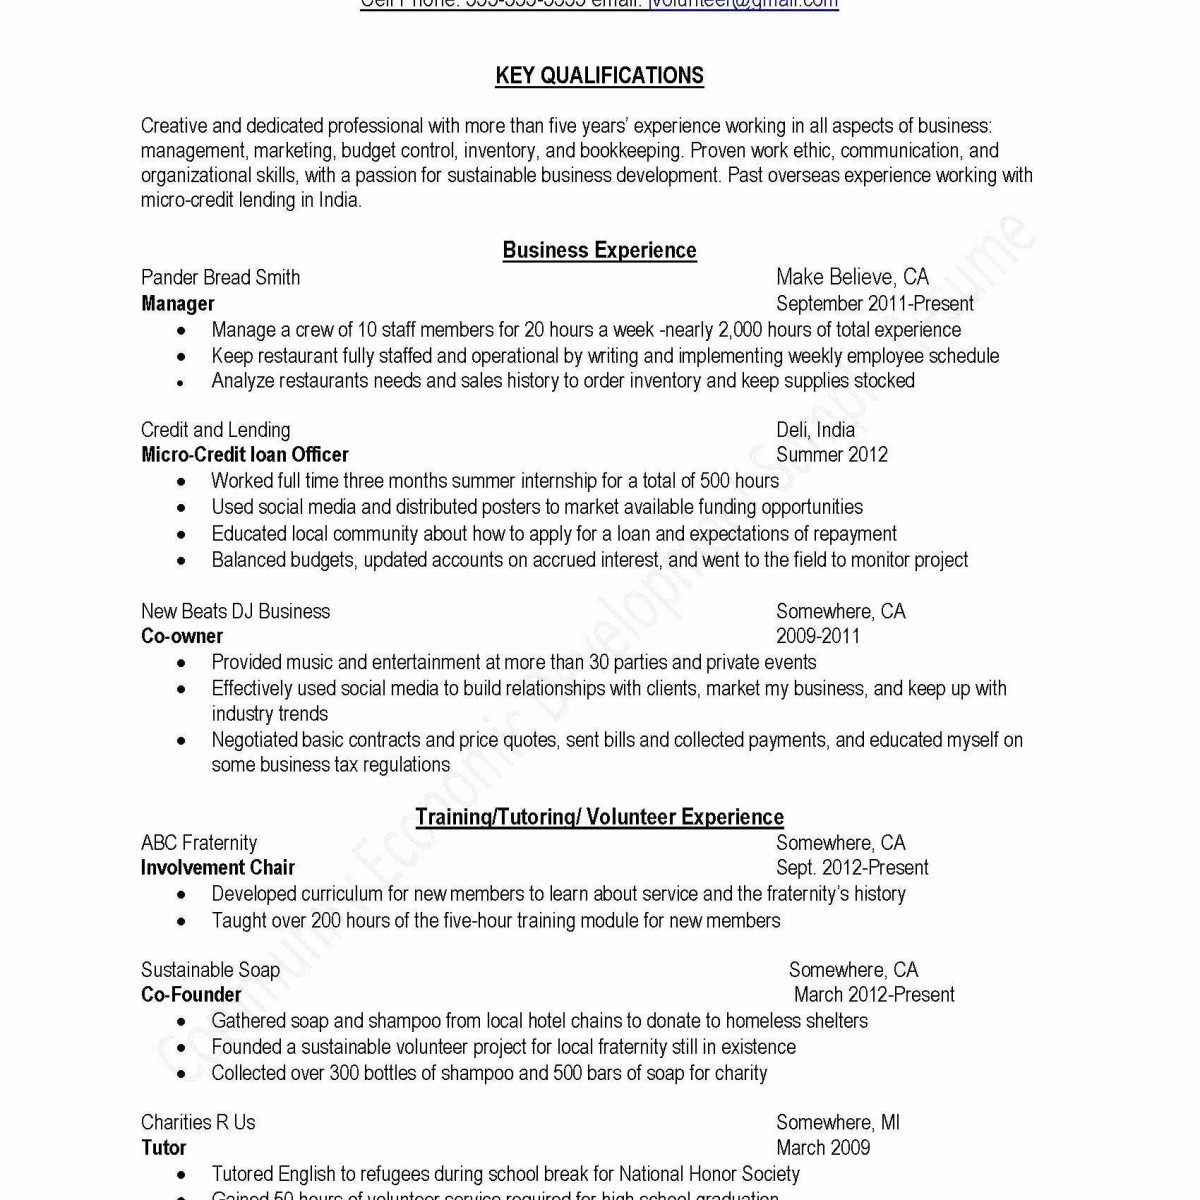 High School Students Resume - High School Resume Examples for College Amazing College Application